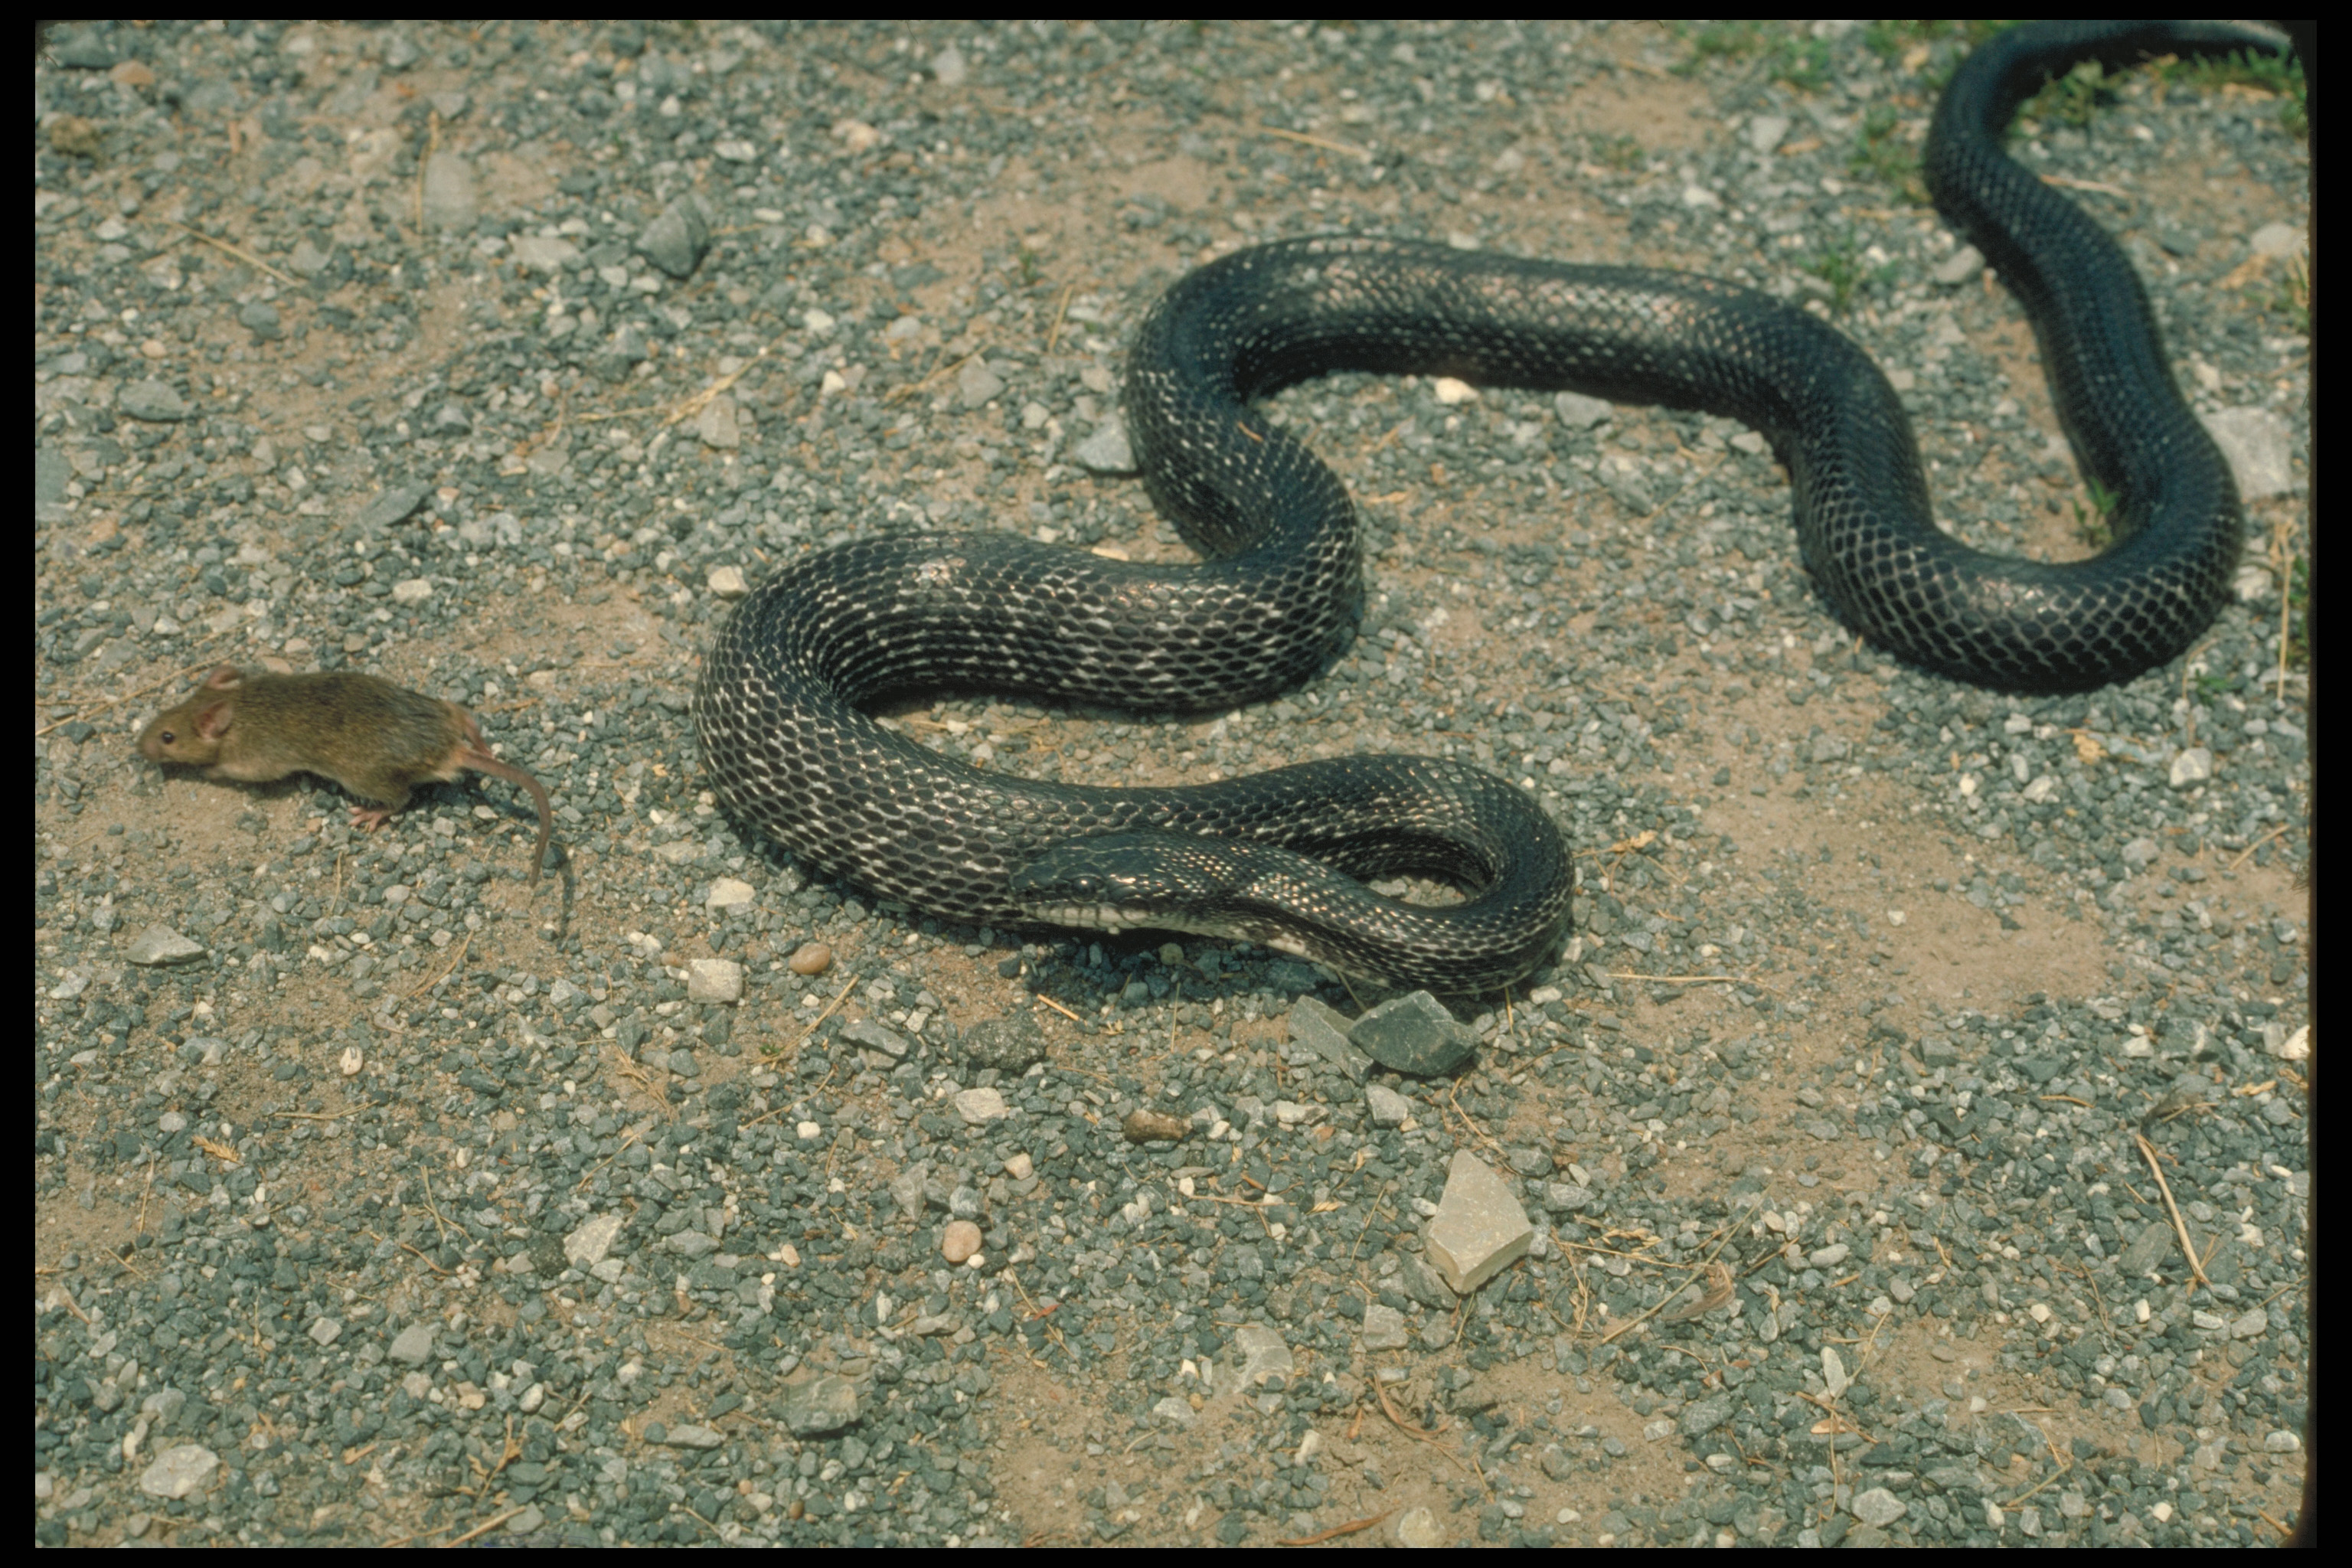 Huge Snakes Eating People The rough green snakes and